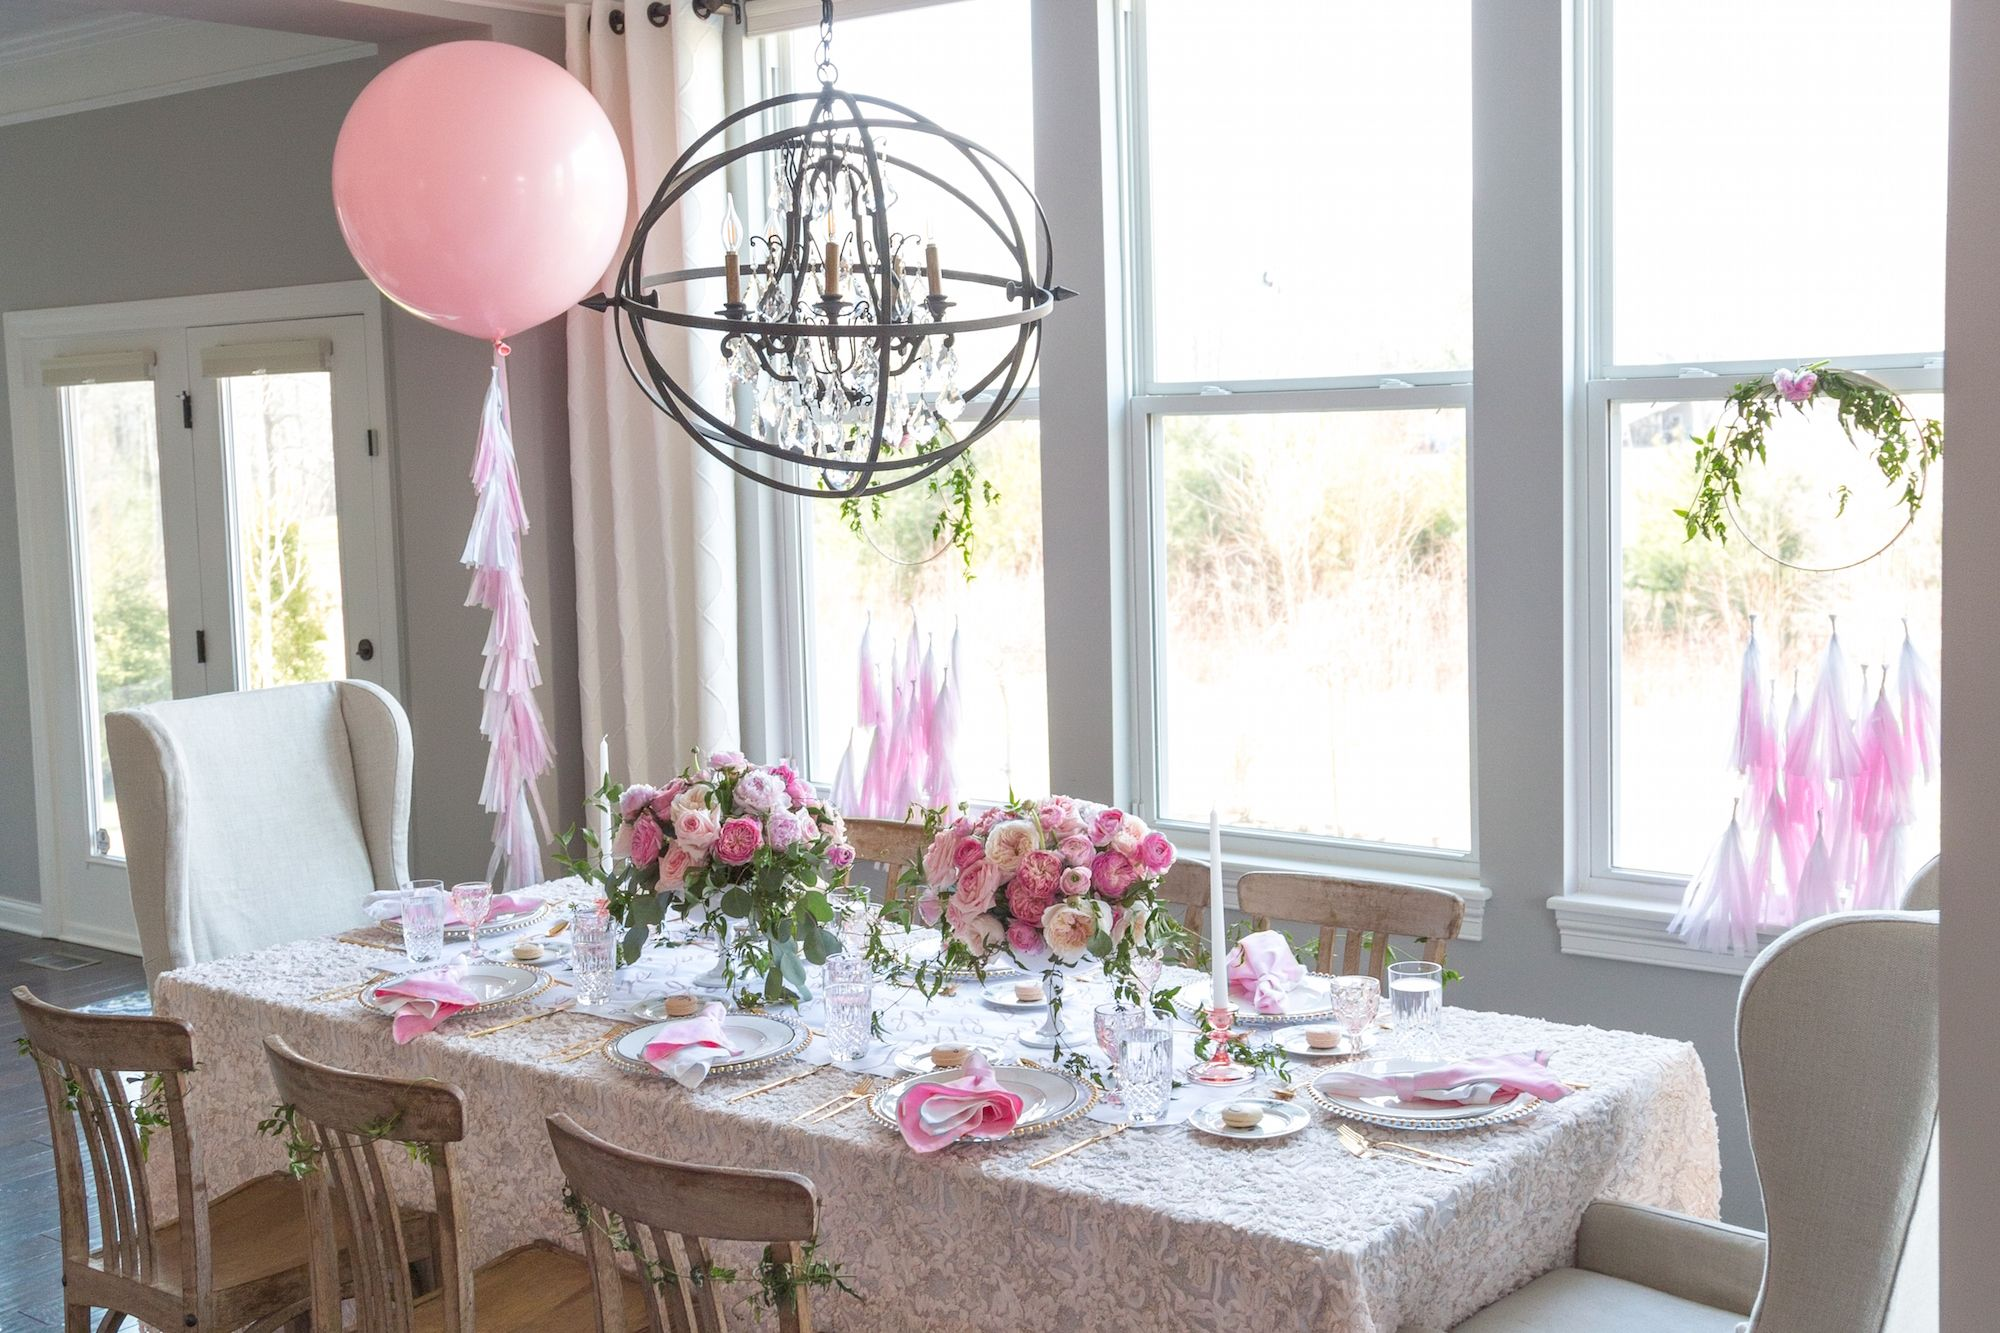 Dining Table Decoration For Mother's Day